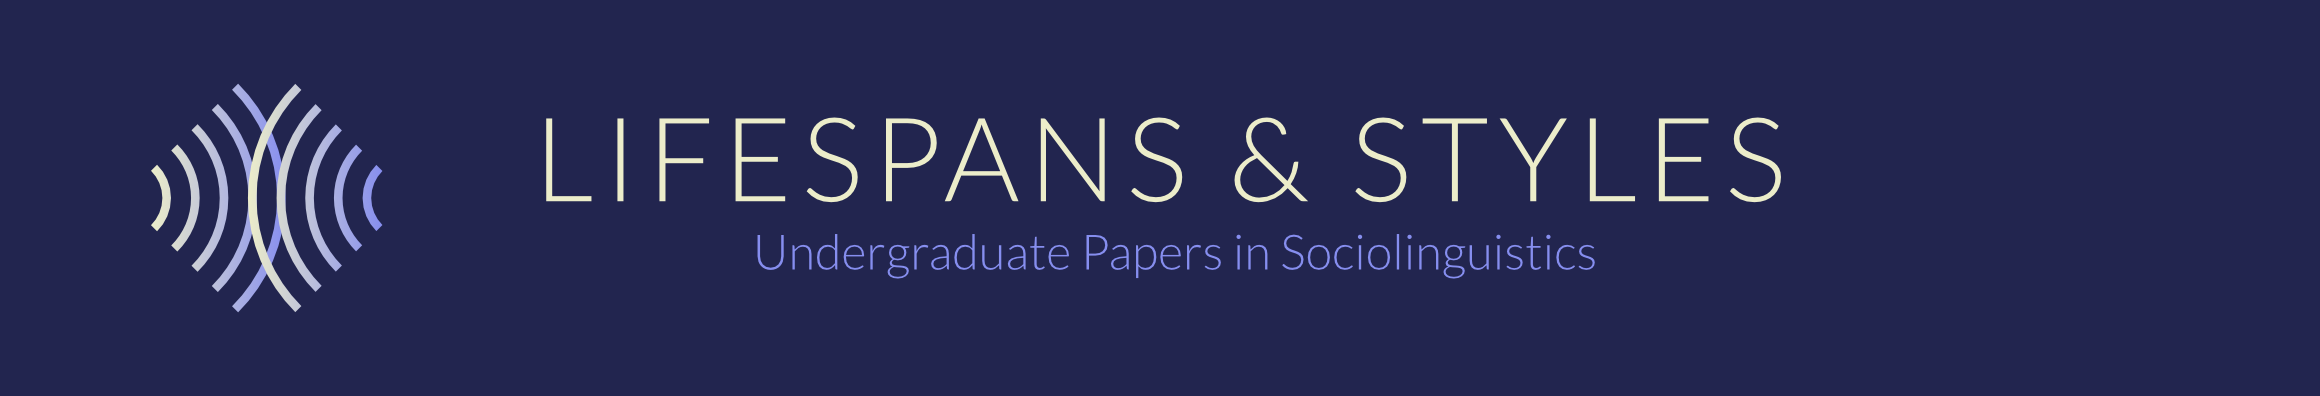 Lifespans & Styles: Undergraduate Papers in Sociolinguistics